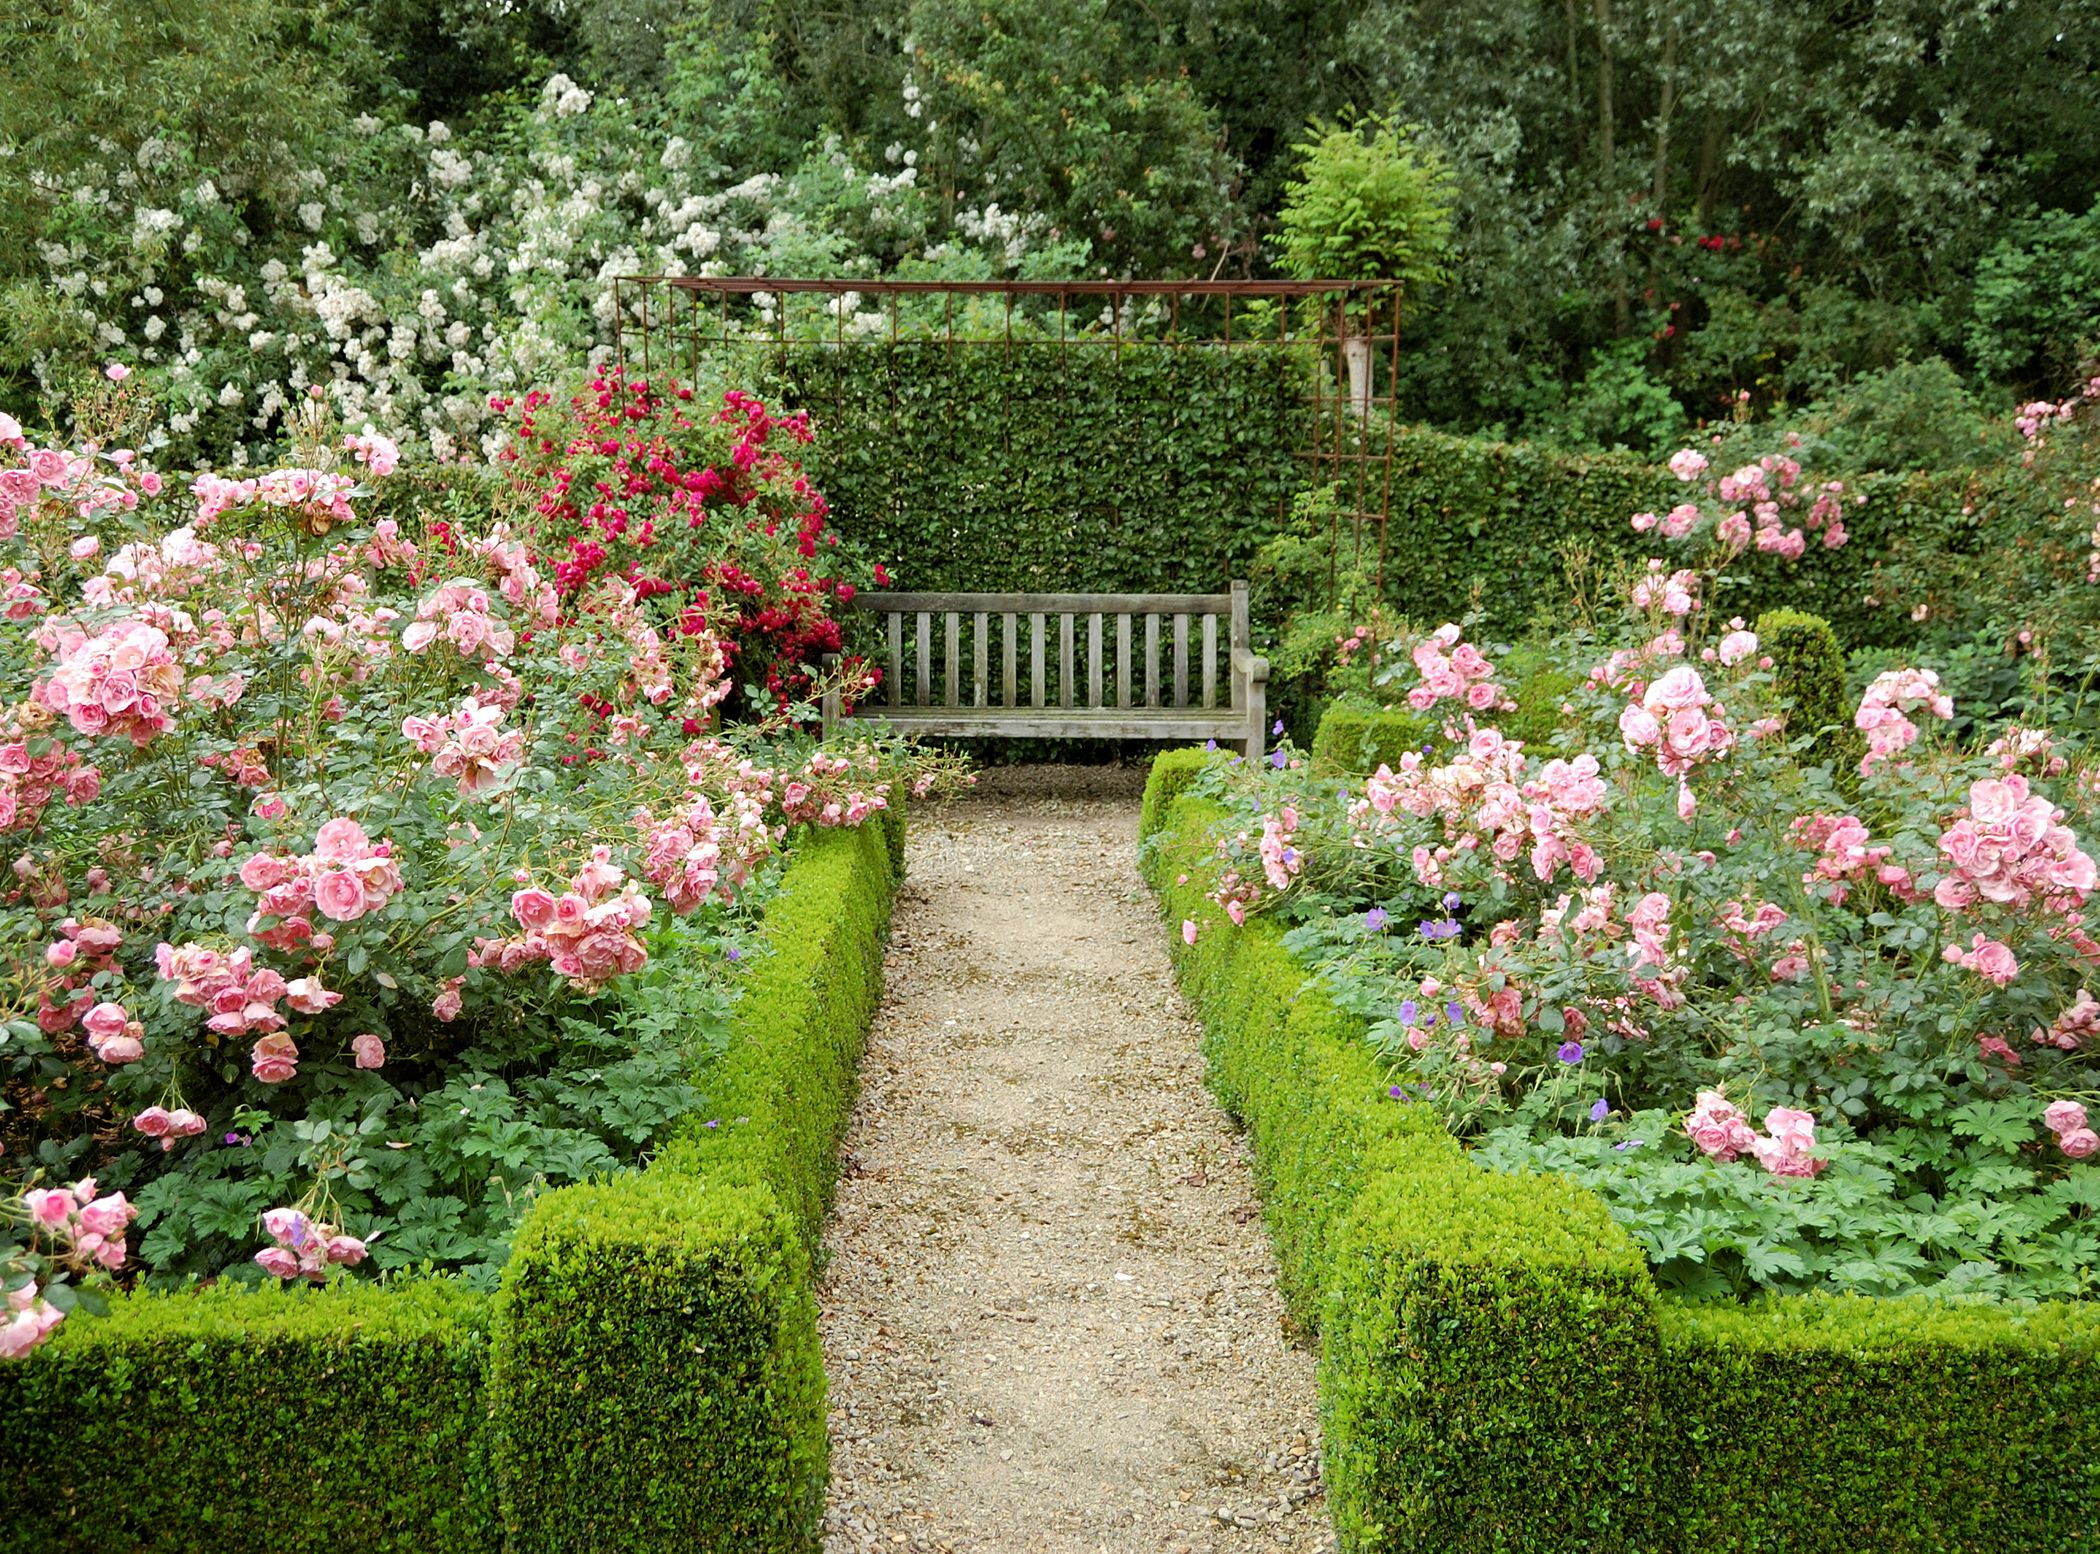 10 English Garden Design Ideas - How to Make an English Garden Landscape